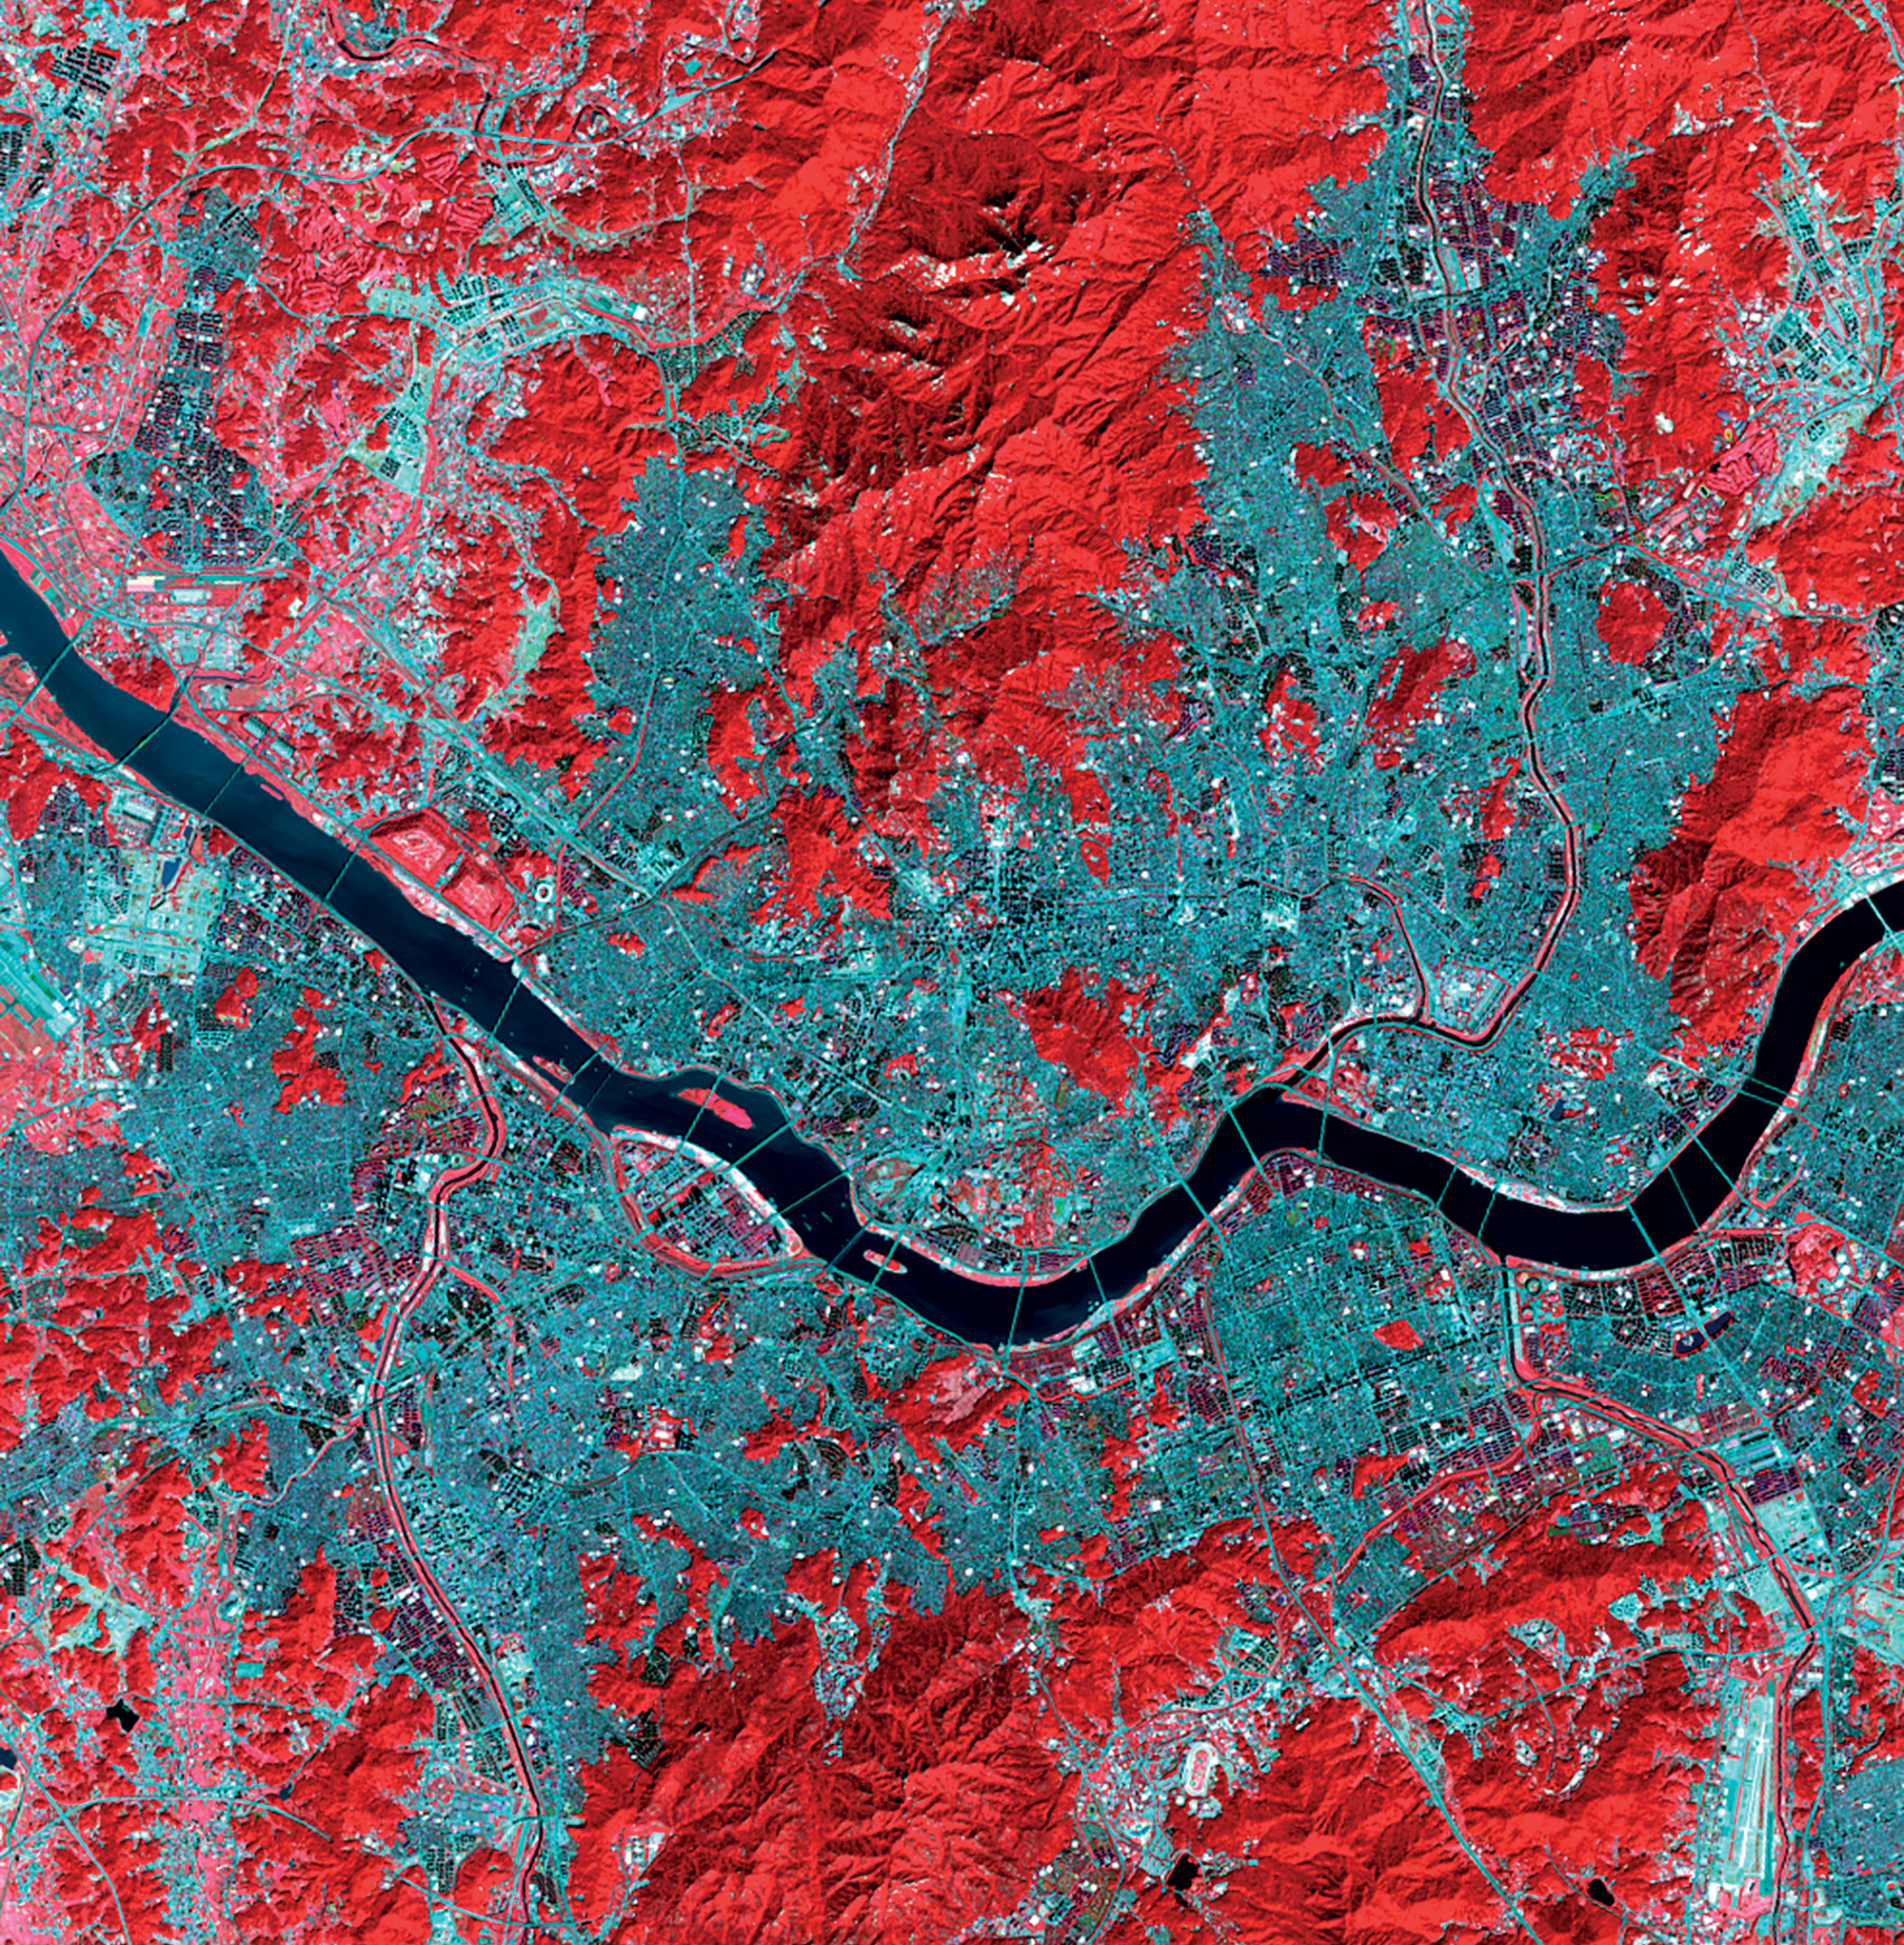 Seoul, Republic of Korea 1:148,000 Twenty-seven bridges span the Han River in the center of Seoul (pictured in dark blue), stitching together the two halves of the city and acting as networks between communities on opposite sides of the river.